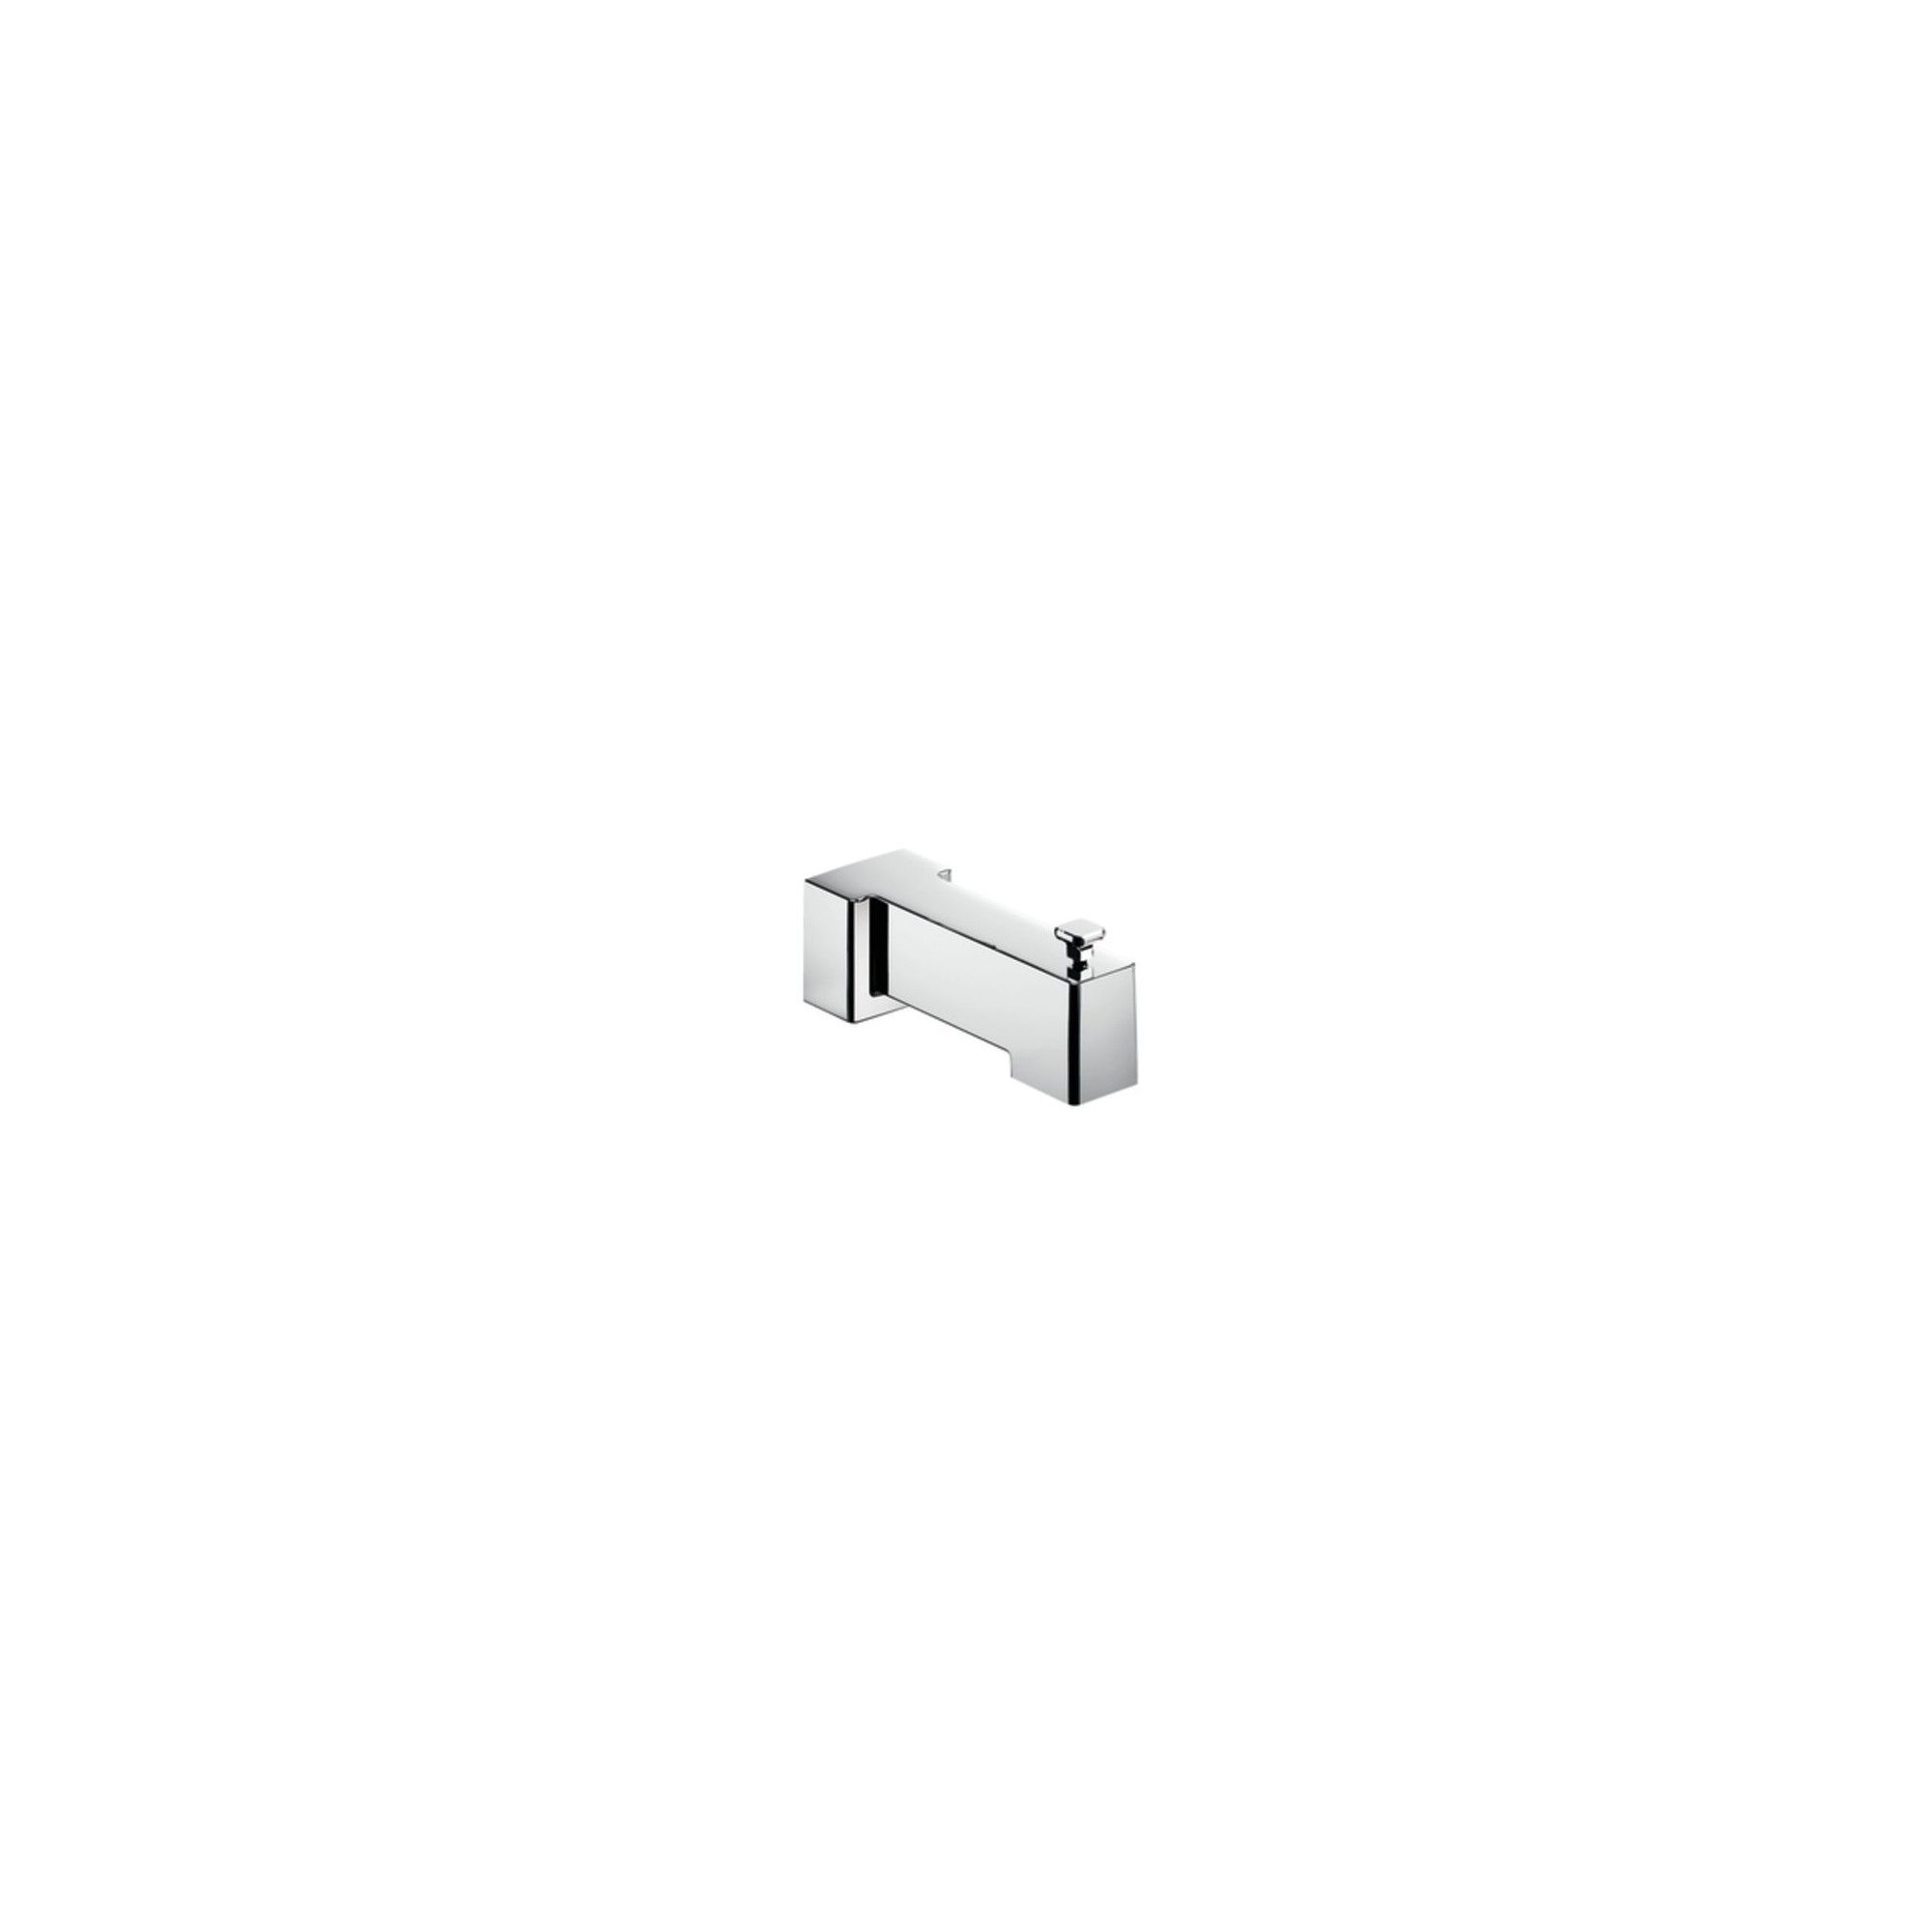 Moen S3896 7 1 4 Wall Mounted Tub Spout With 1 2 Slip Fit Connection From The 90 Degree Collection With Diverter Chr Tub Spout Wall Mount Tub Faucet Moen